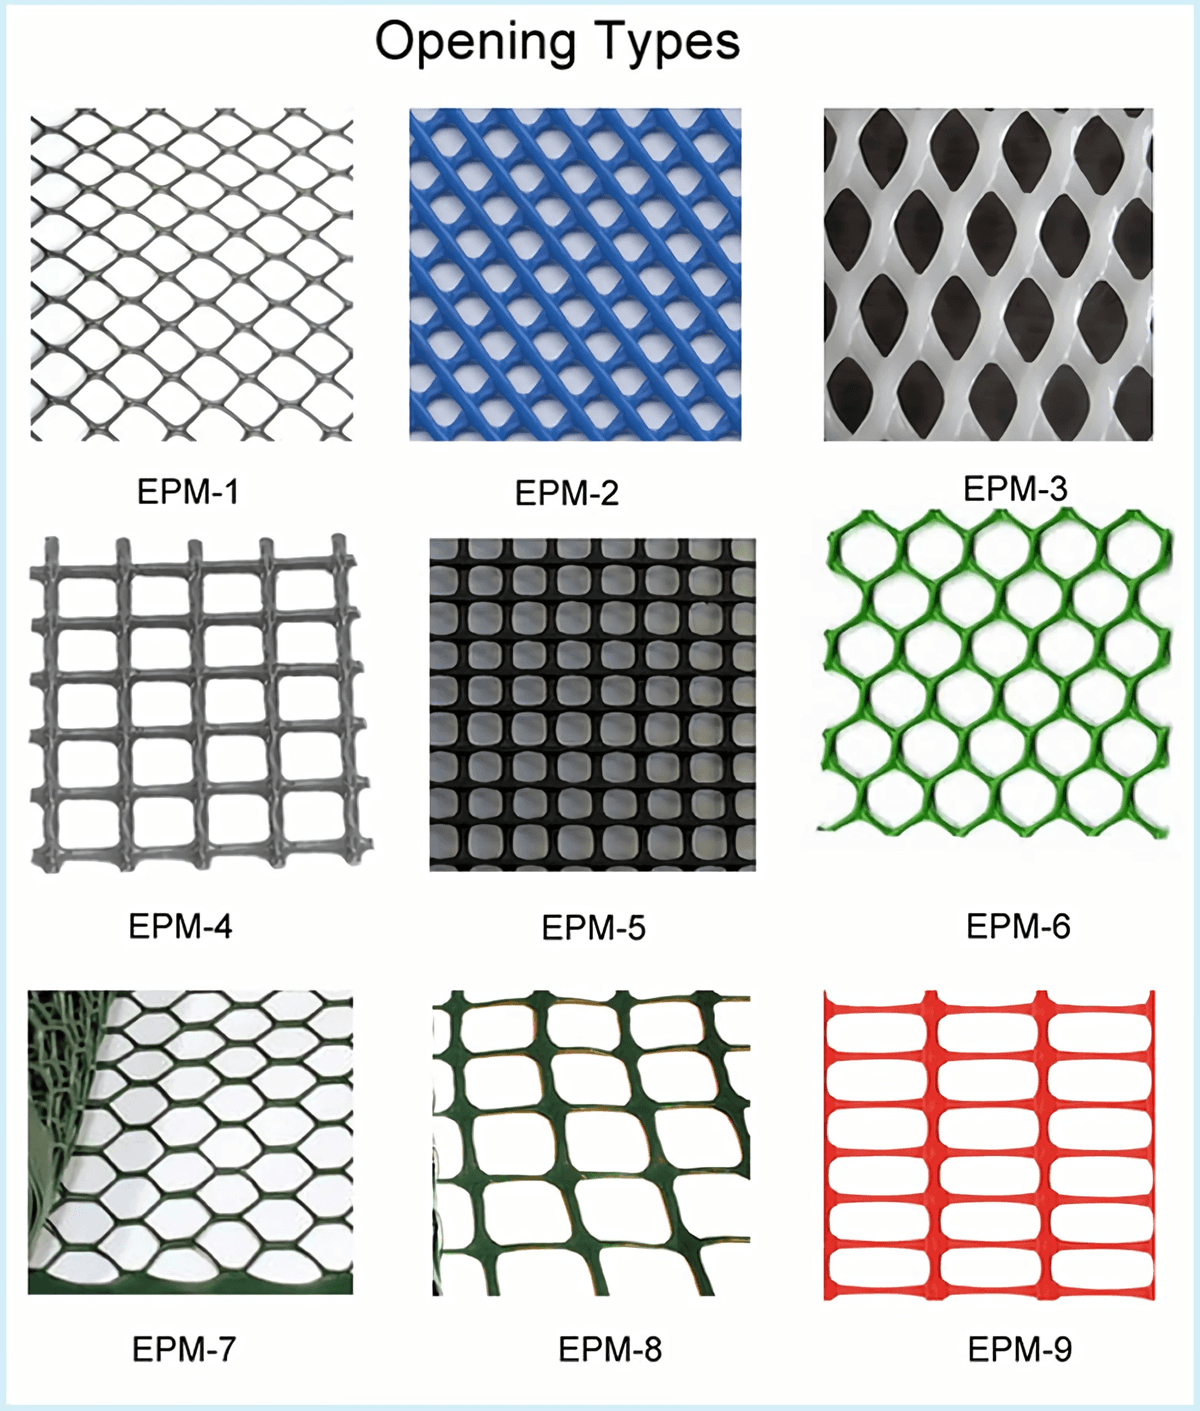 nine kinds of opening types of extruded plastic meshes.